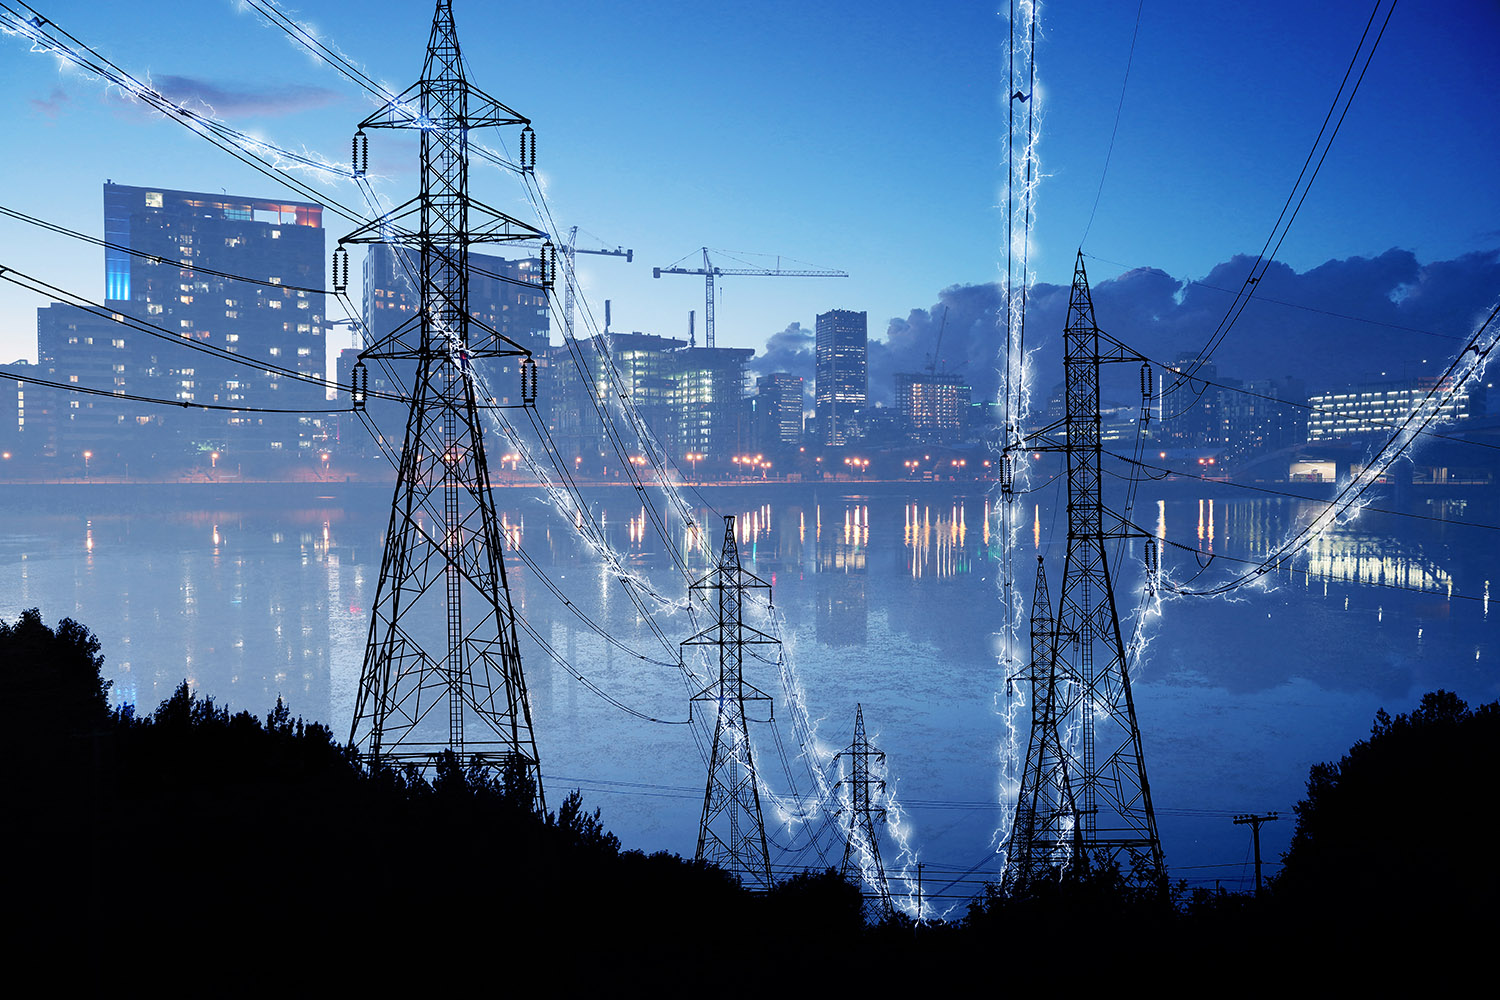 Urban Electrification Concept in Blue - Royalty-Free Stock Imagery